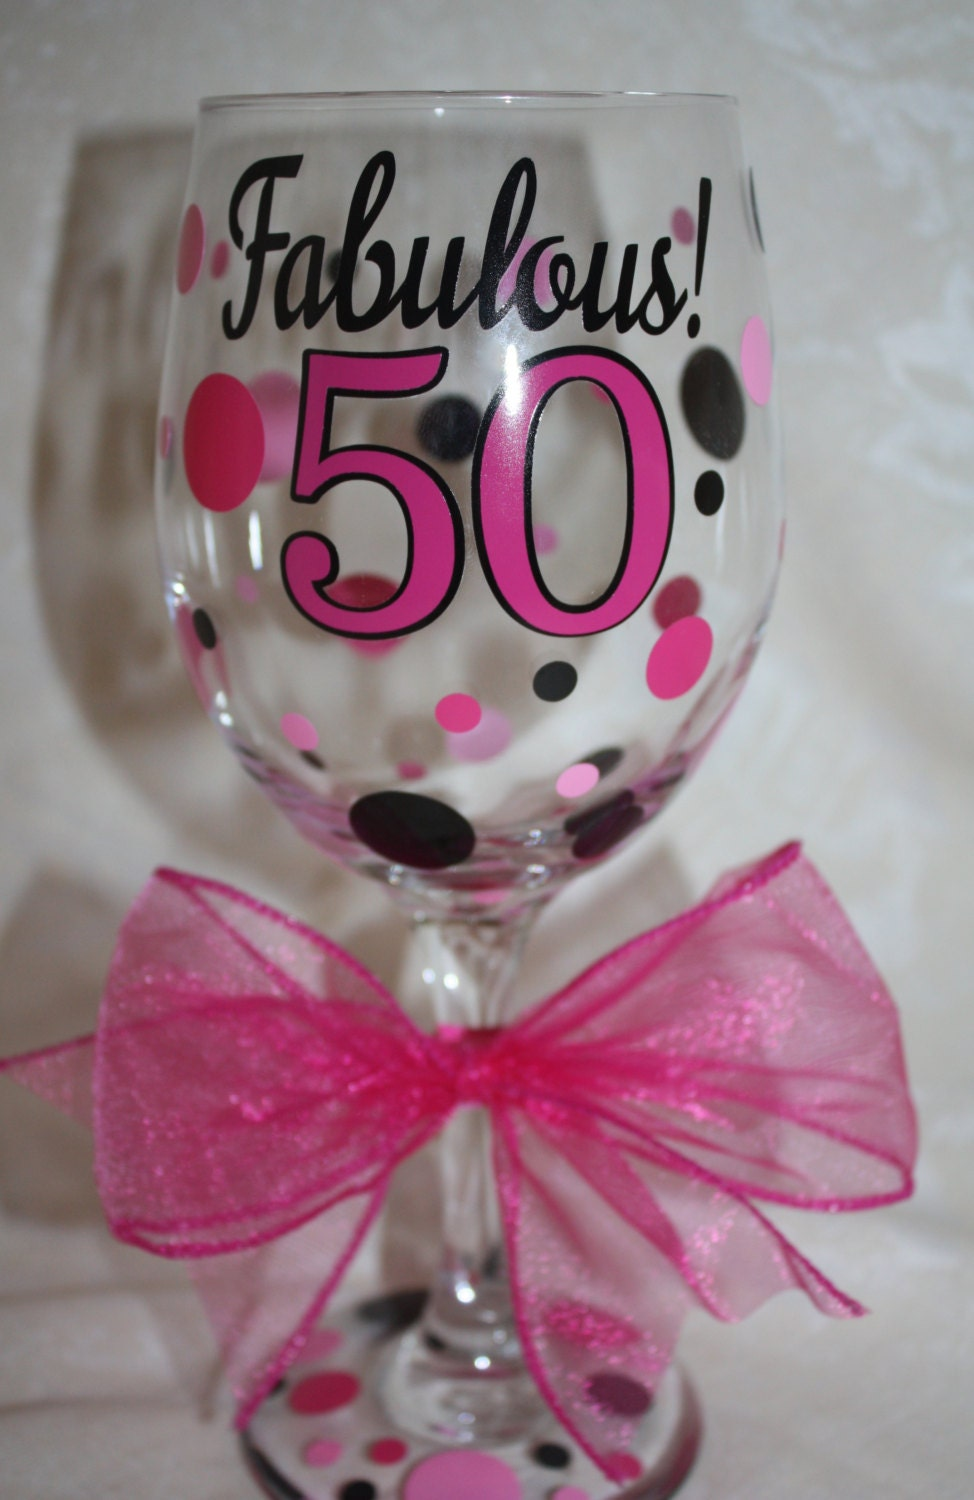 Fabulous 50 Wine Glass 20 Ounce Wine Glass For The 50 Year